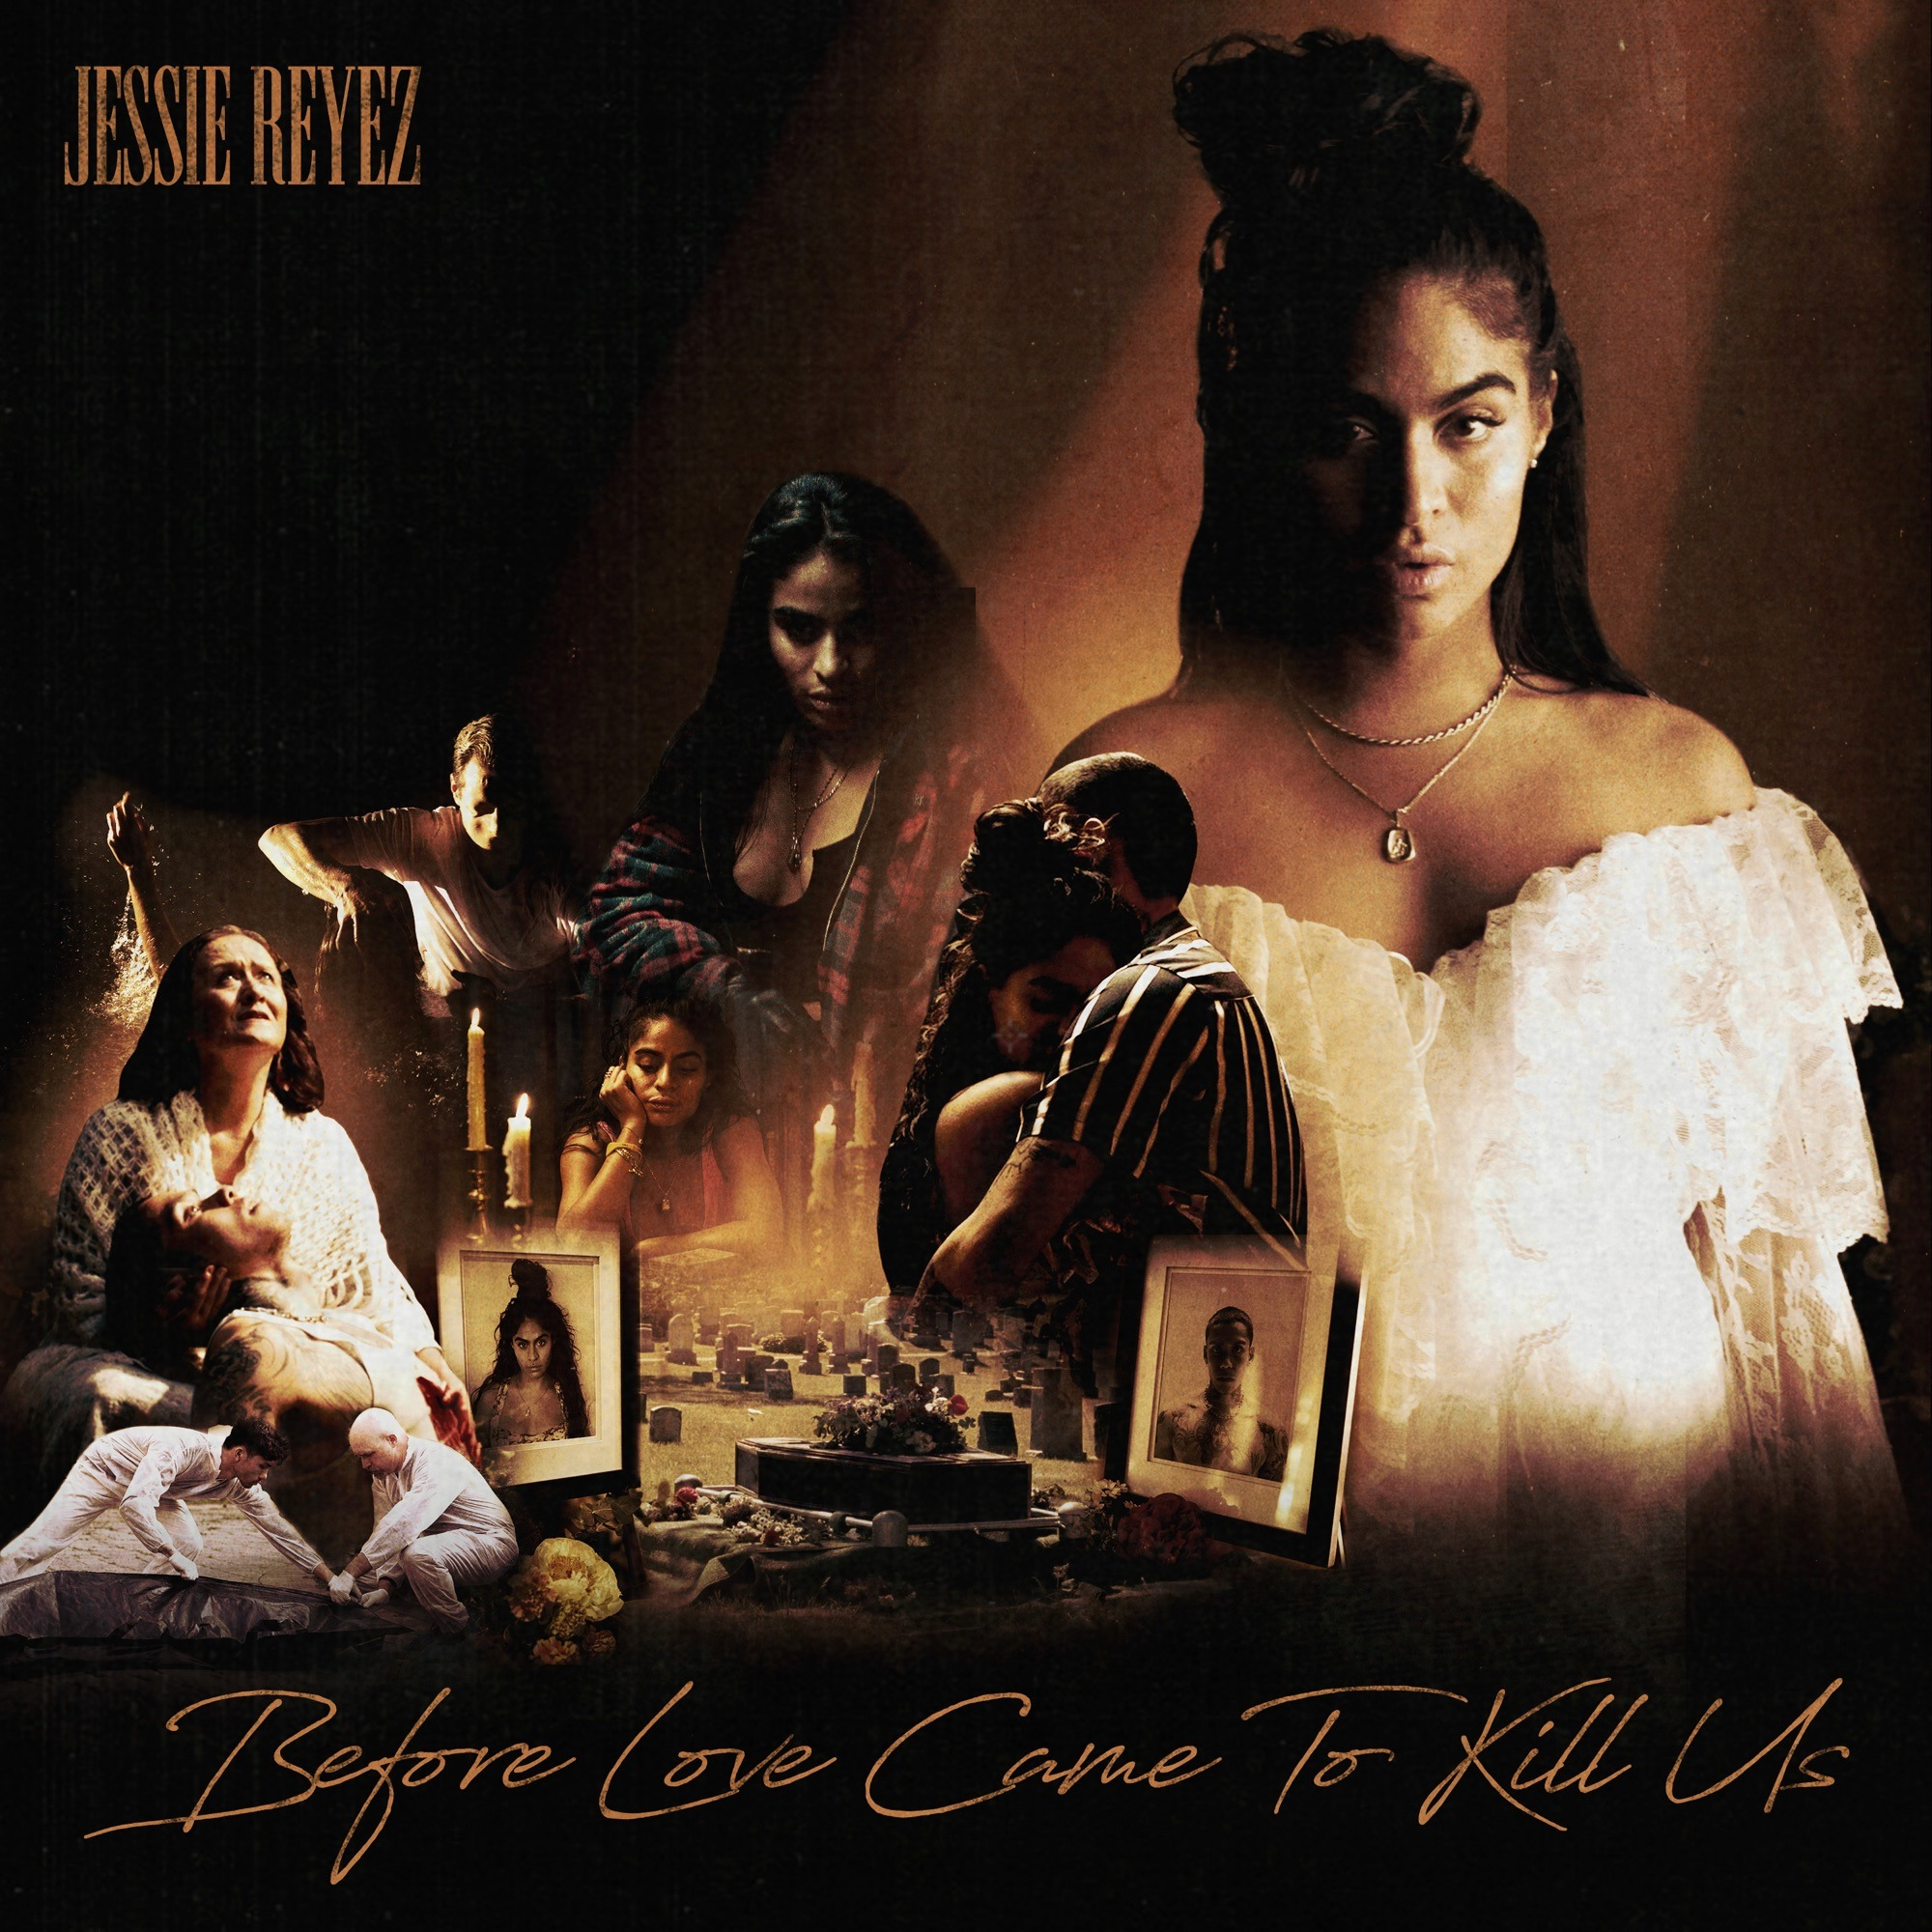 Jessie Reyez – BEFORE LOVE CAME TO KILL US (Deluxe)